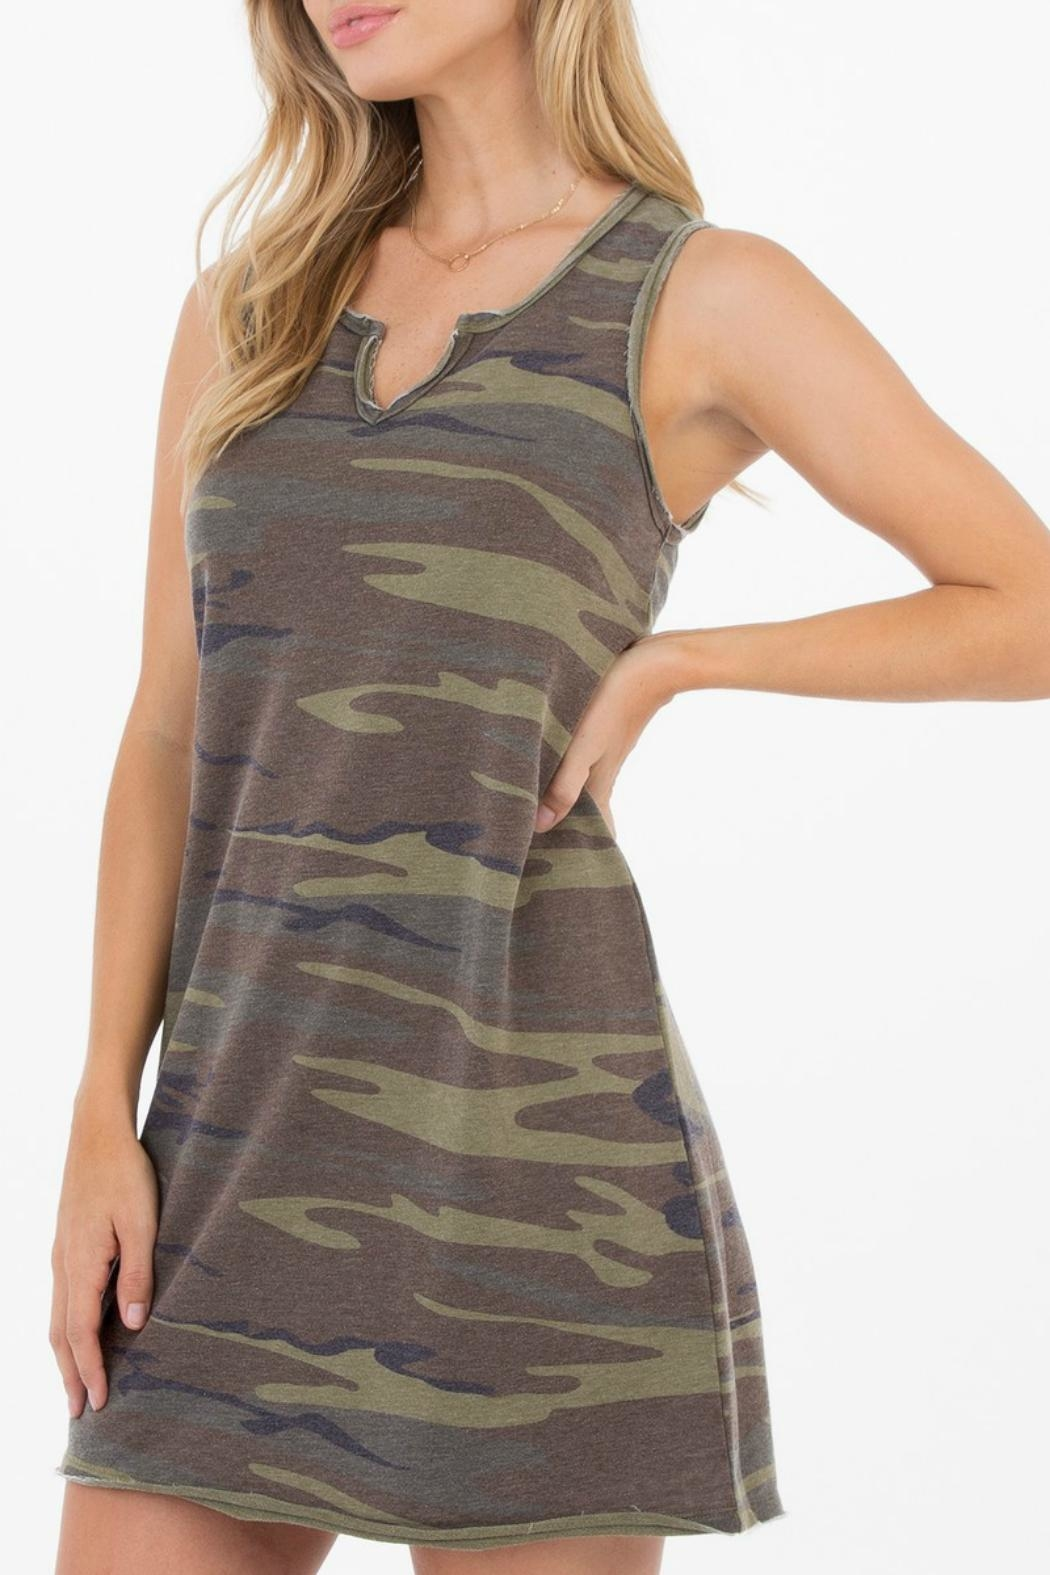 z supply Camo Tank Dress from New Hampshire by Gondwana — Shoptiques